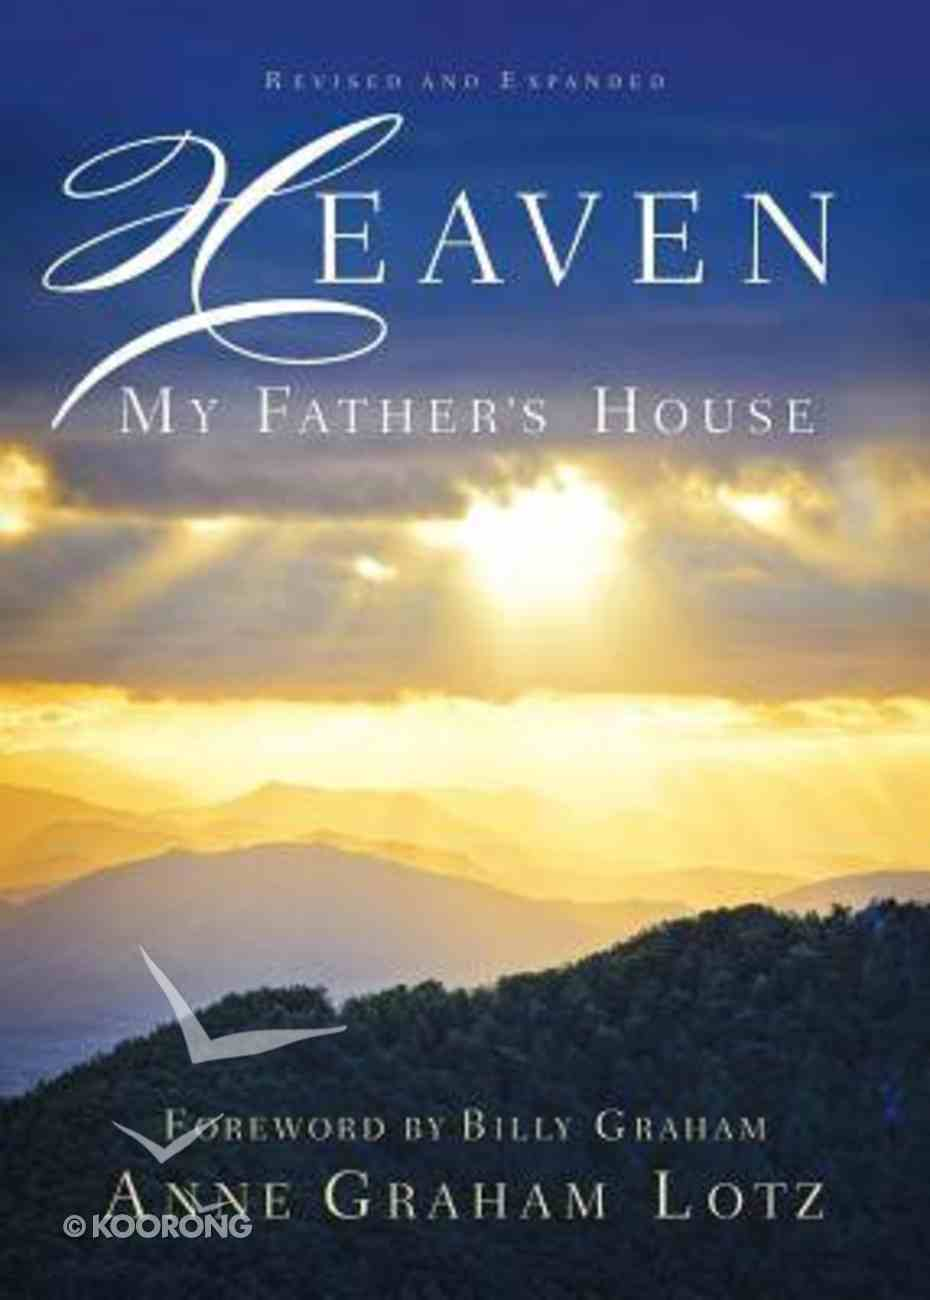 Heaven: My Father's House Paperback